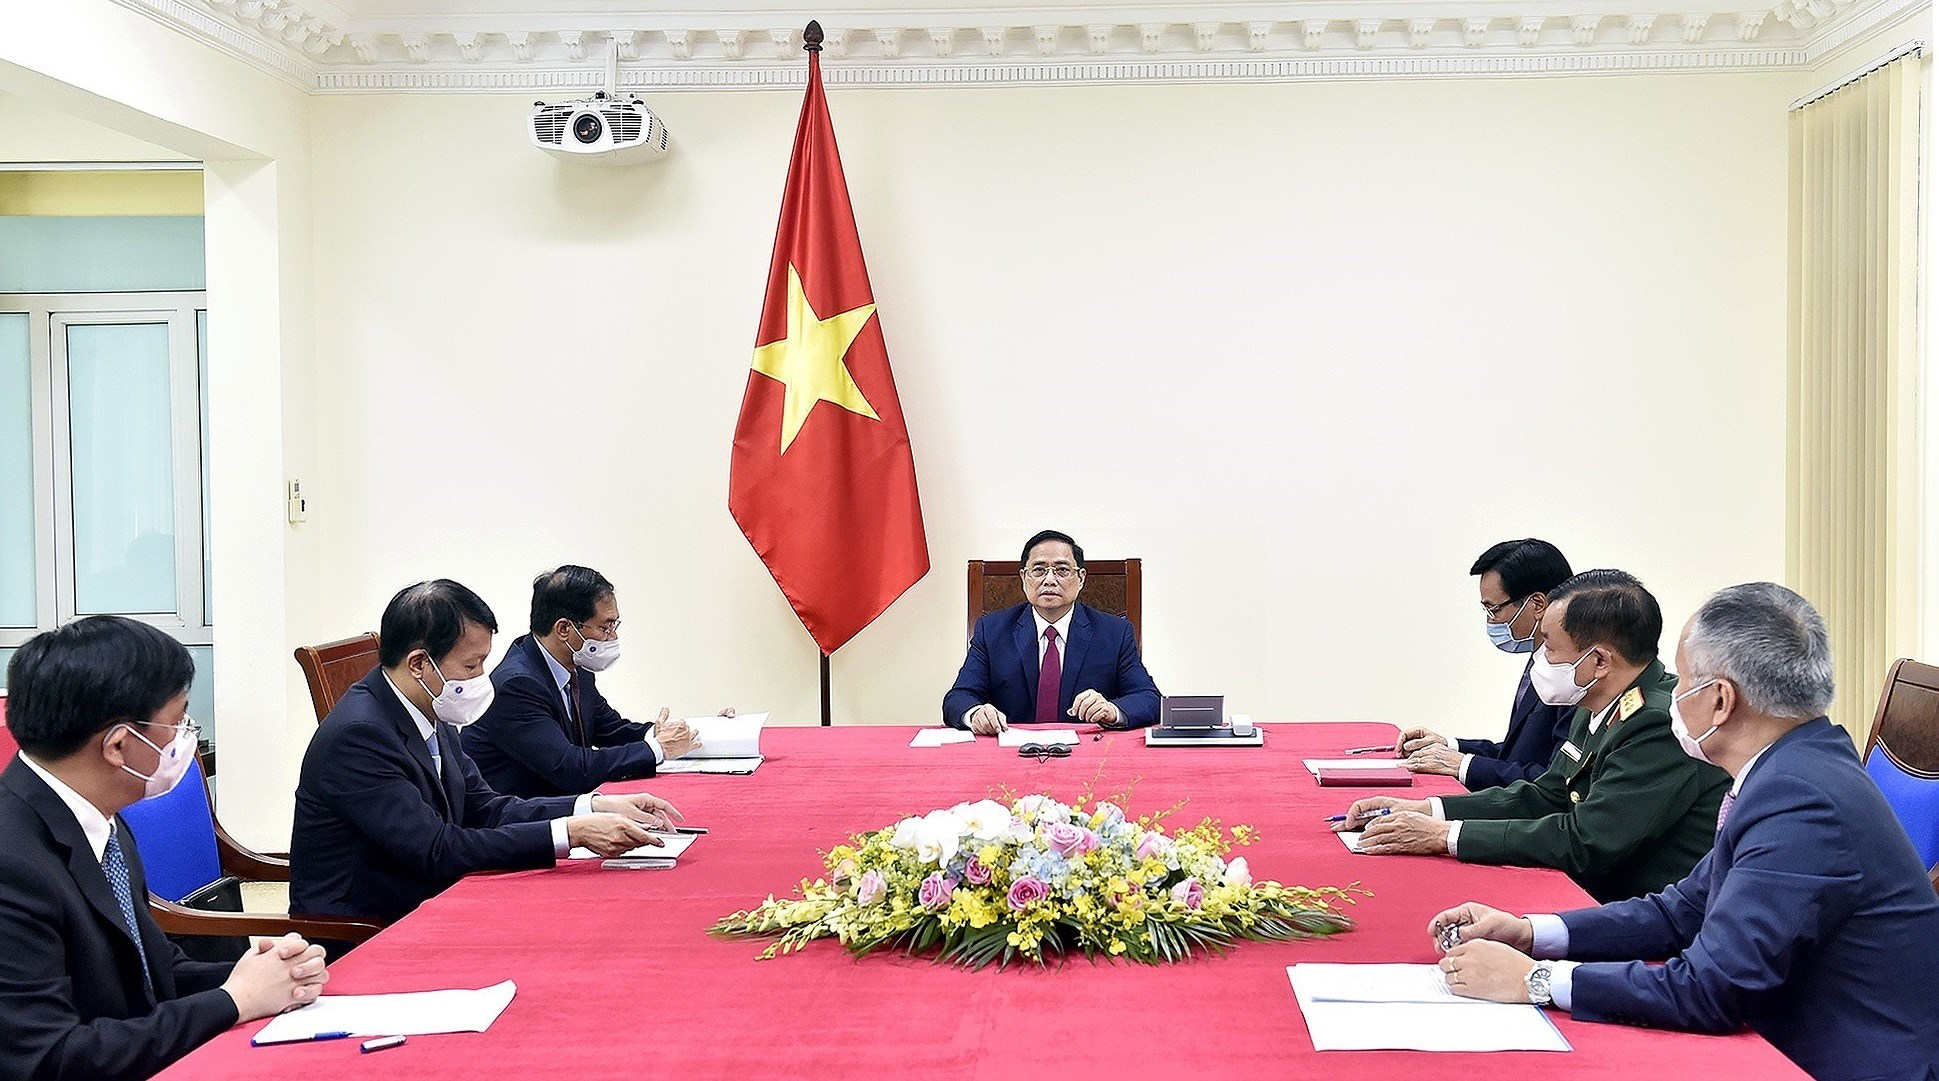 Vietnam gives top priority to developing relations with China: PM hinh anh 1